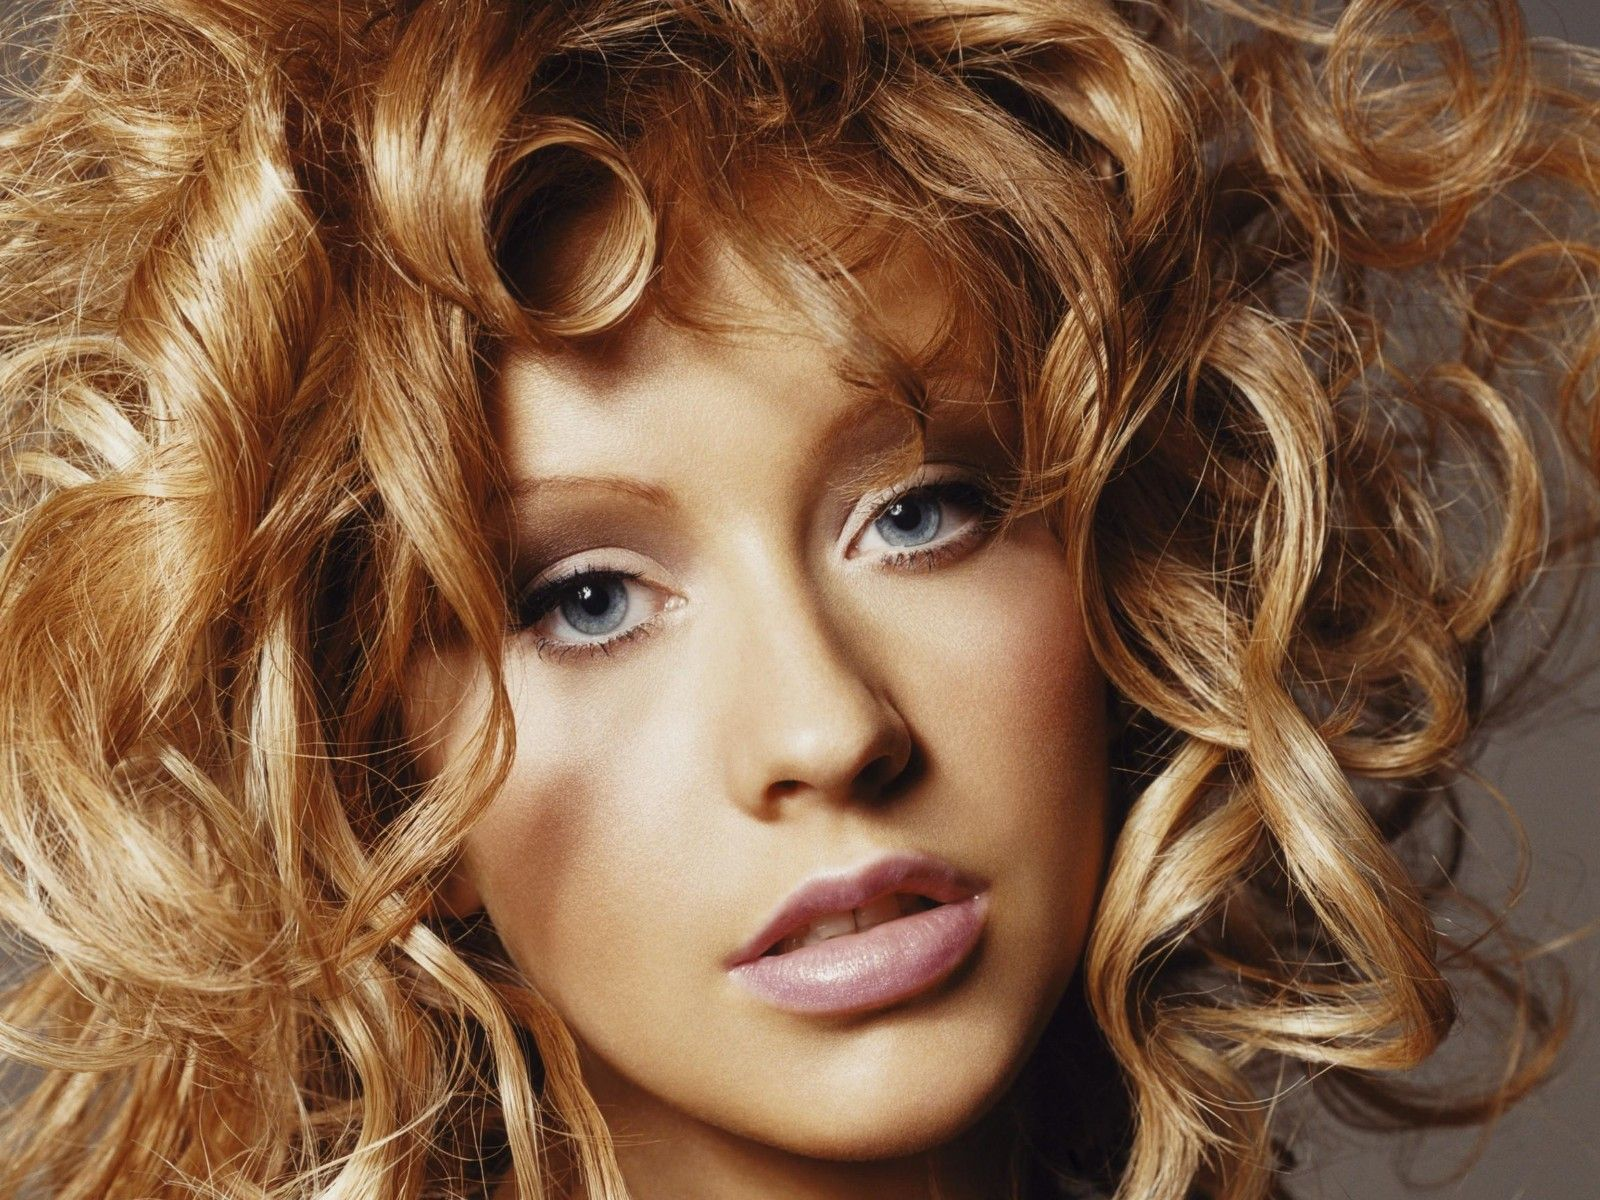 ... quality Christina Aguilera wallpaper / Celebrities Female / 1600x1200